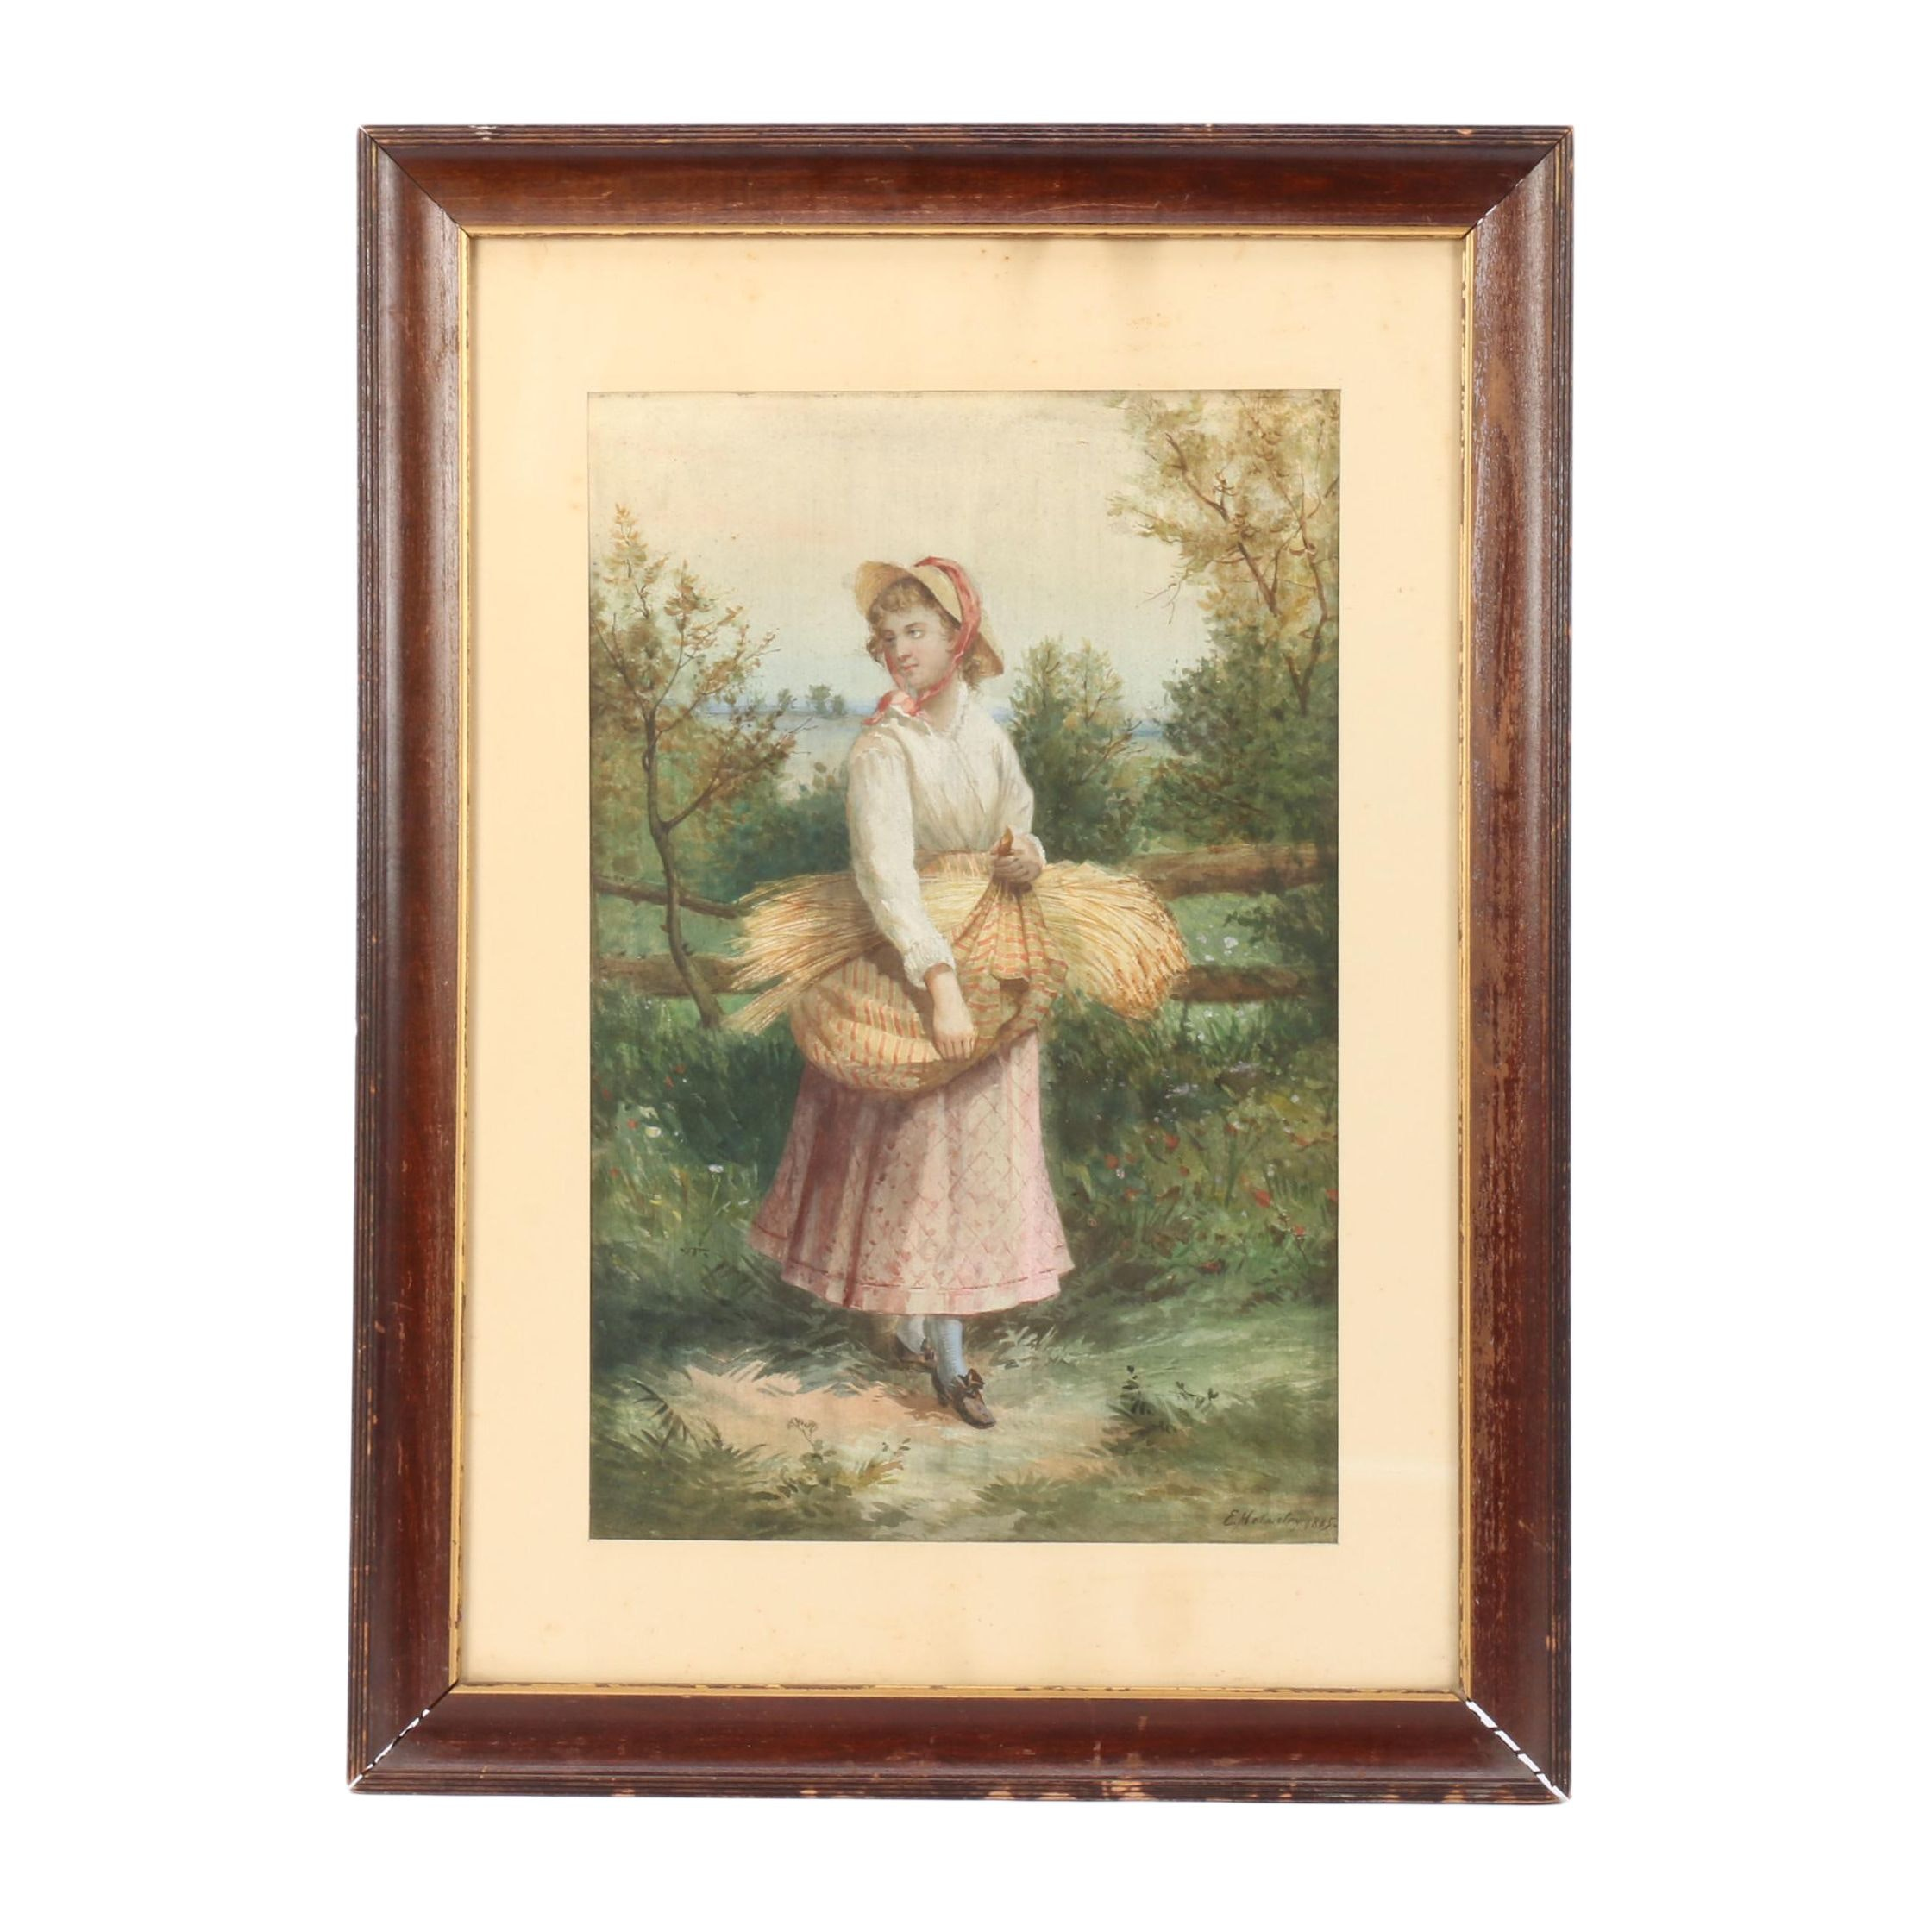 E. Helmsley 1885 Watercolor Painting of Woman with a Bundle of Wheat